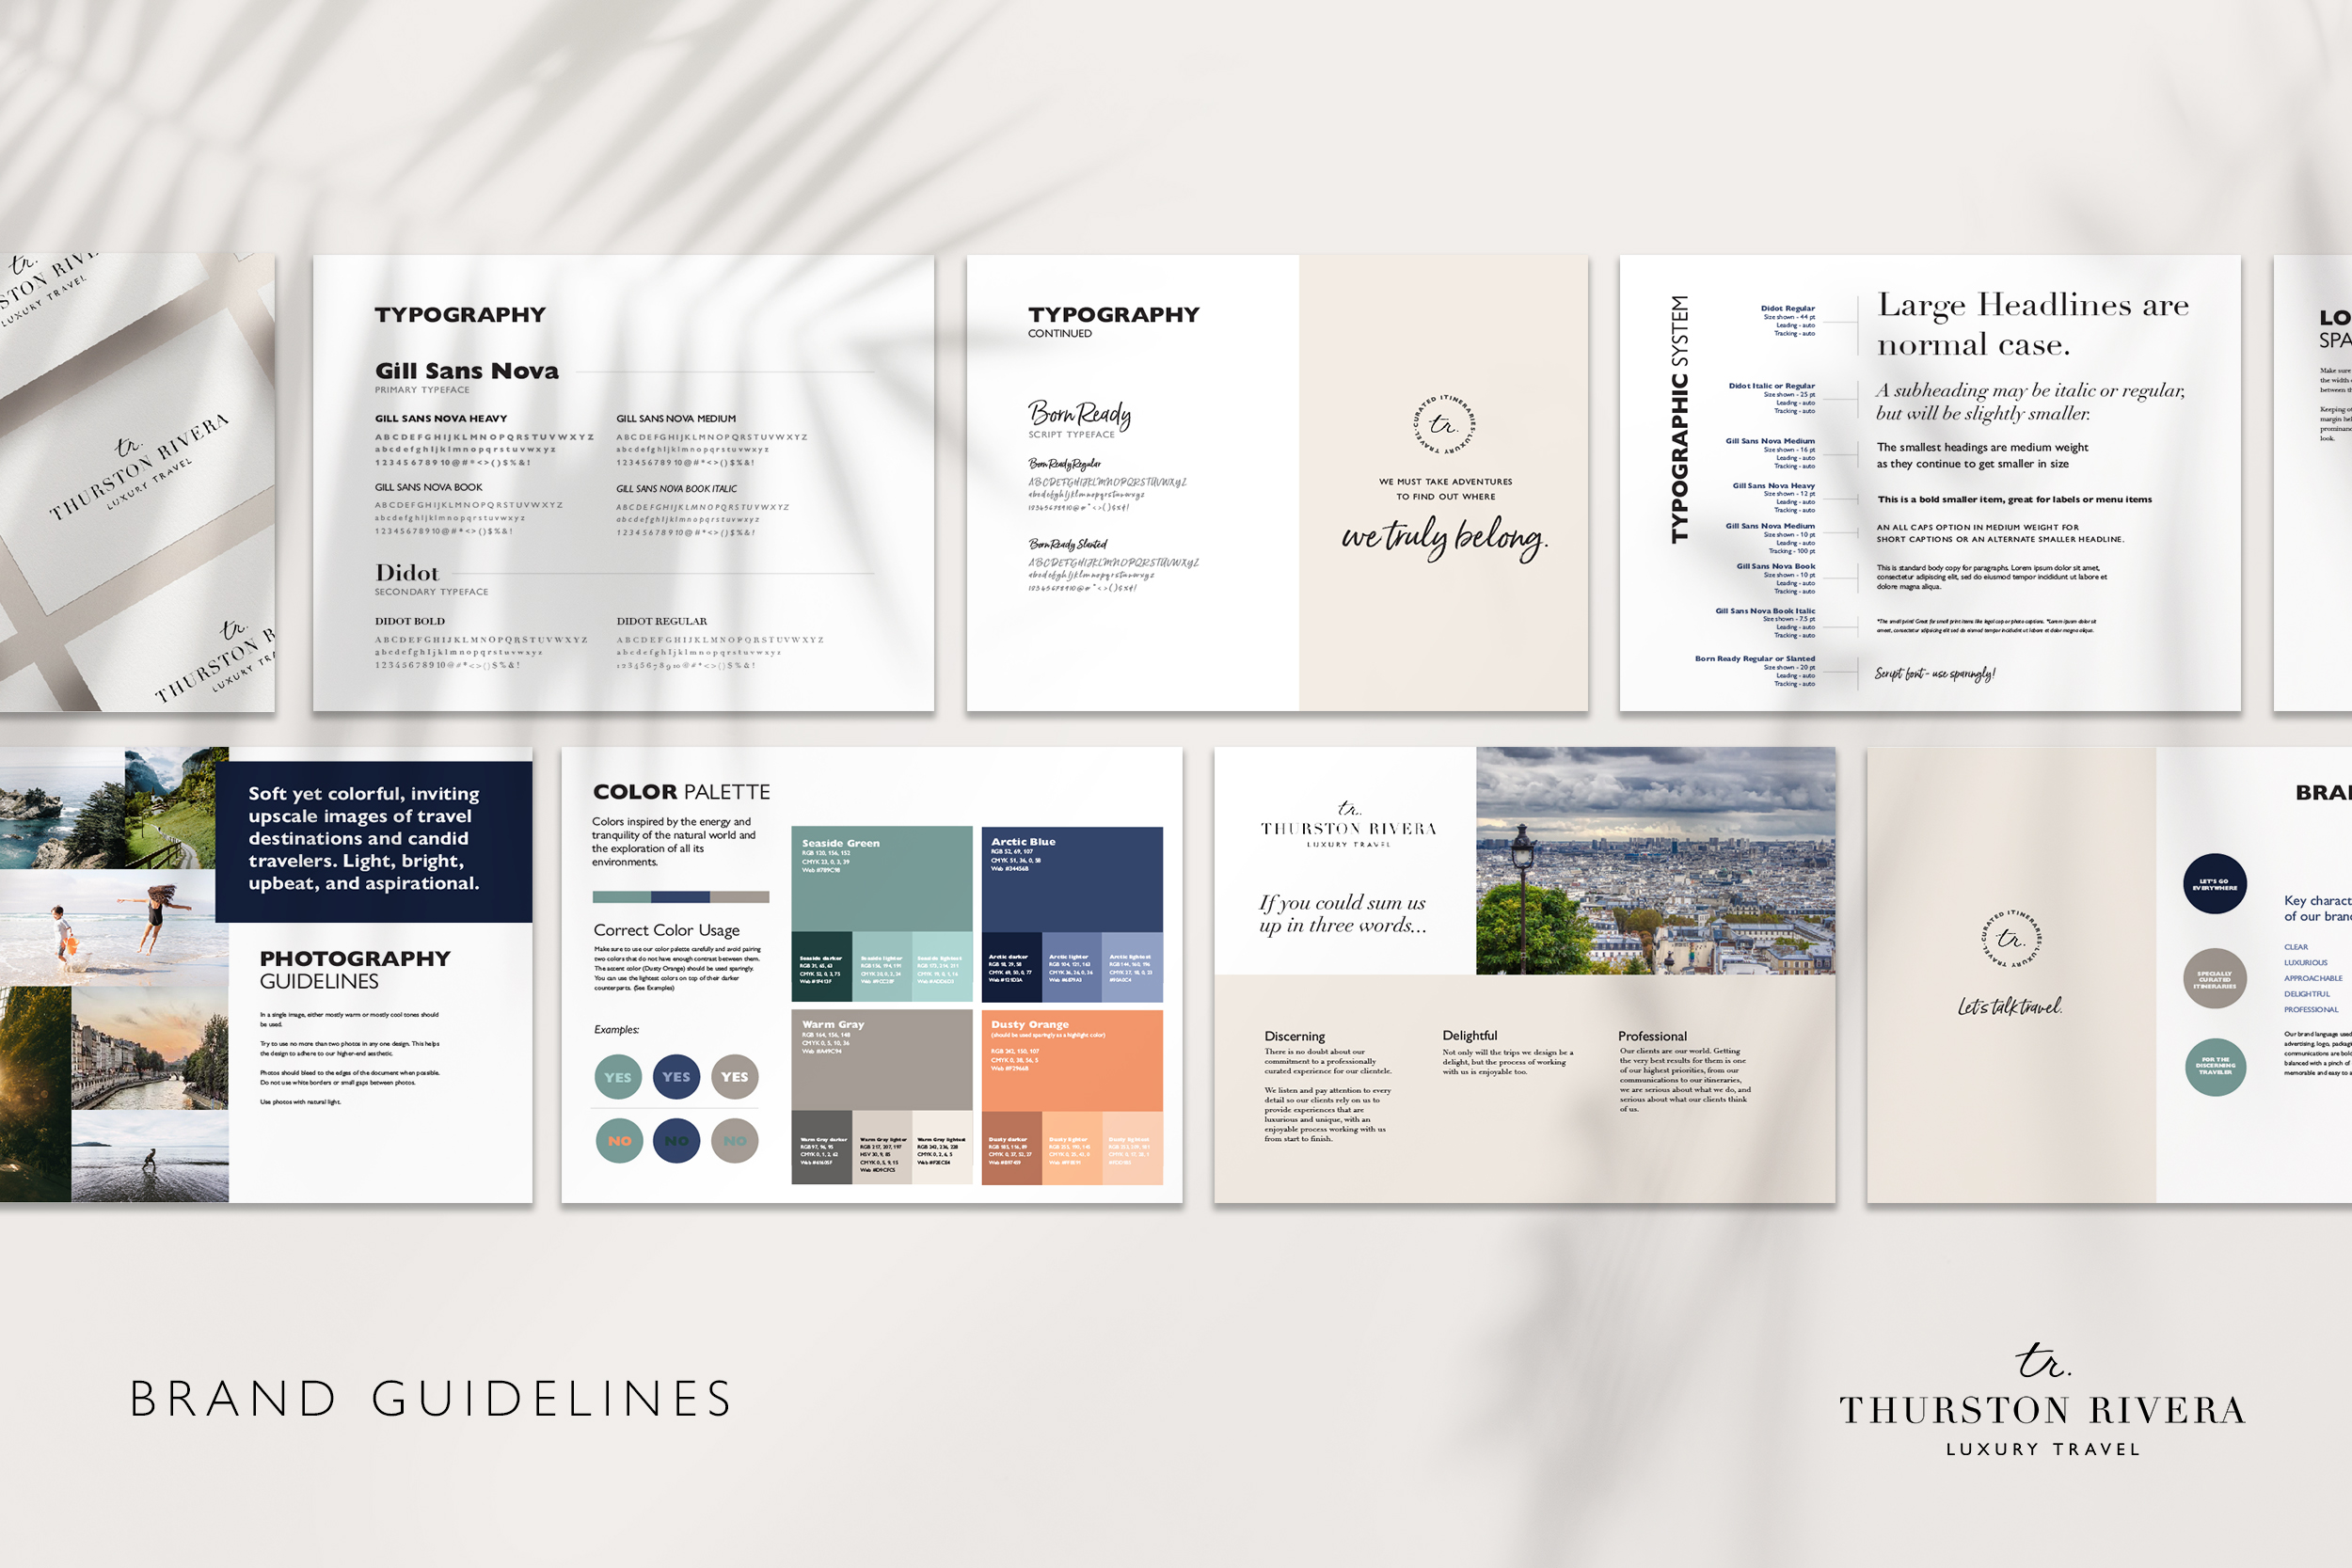 Brand Guidelines developed by CGDL